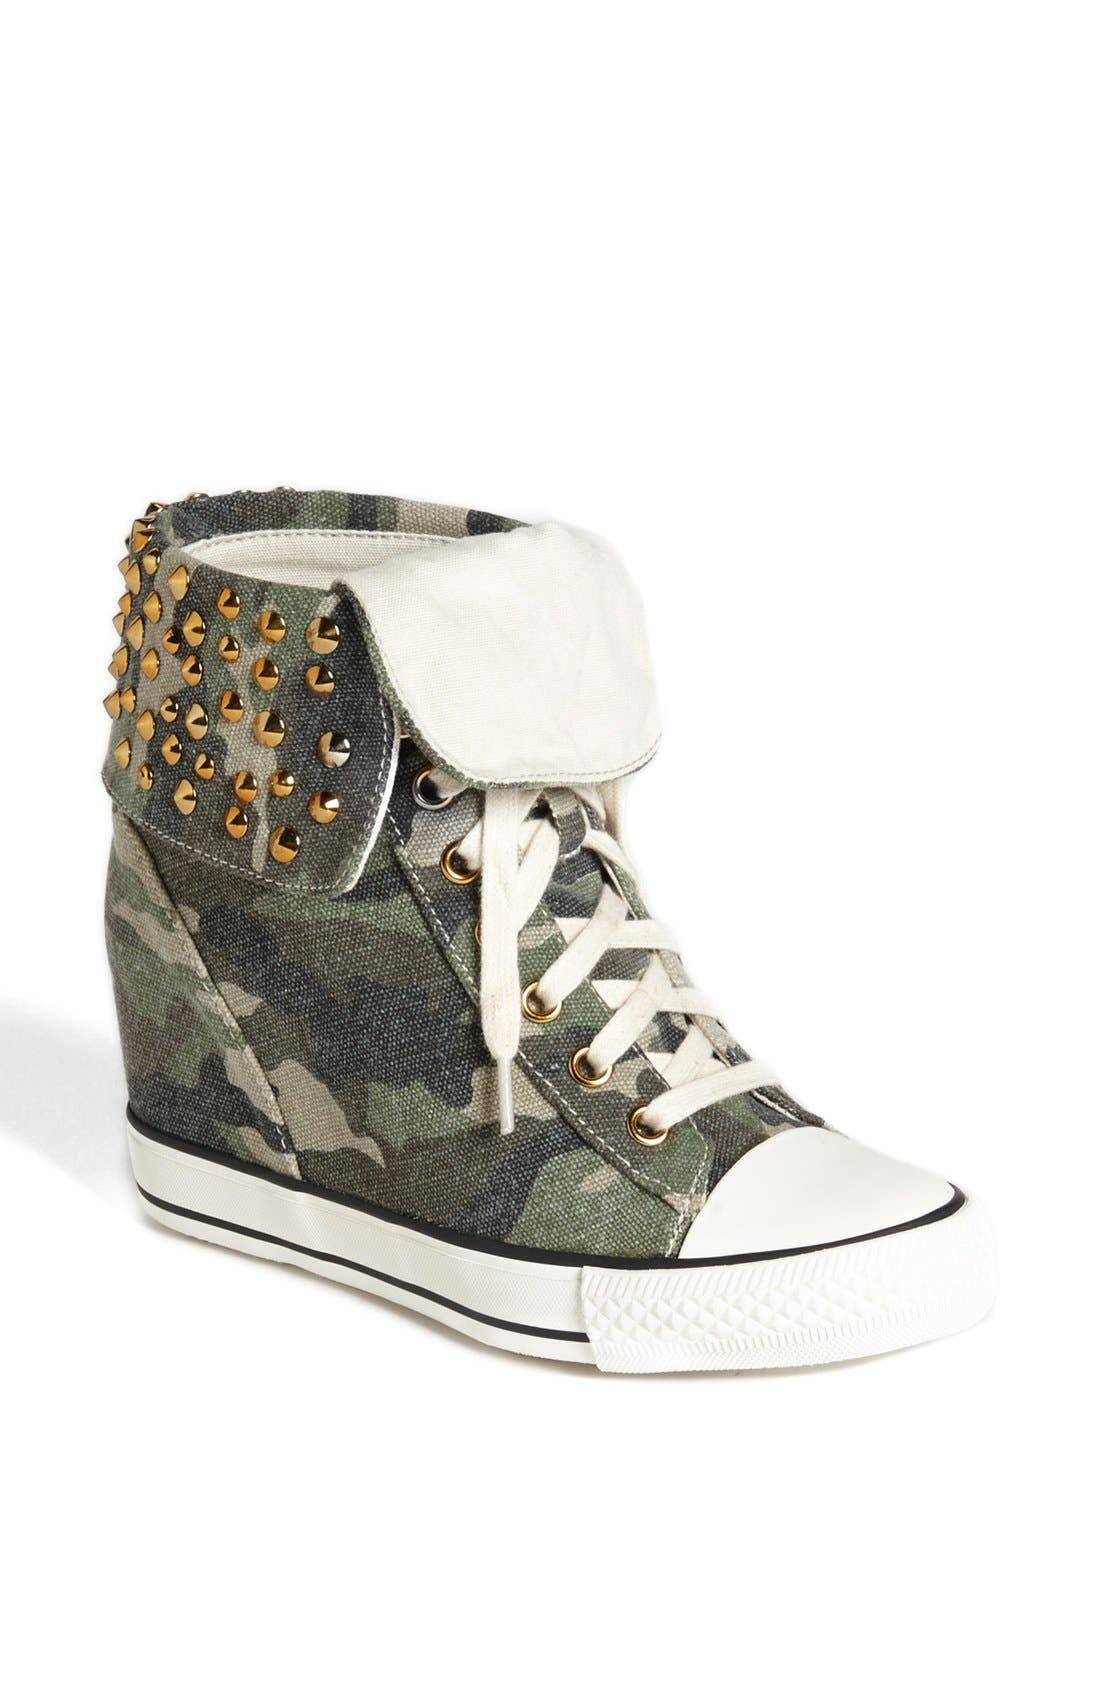 Alternate Image 1 Selected - GOLDLUXE by Zigi 'Cavity' Wedge Sneaker